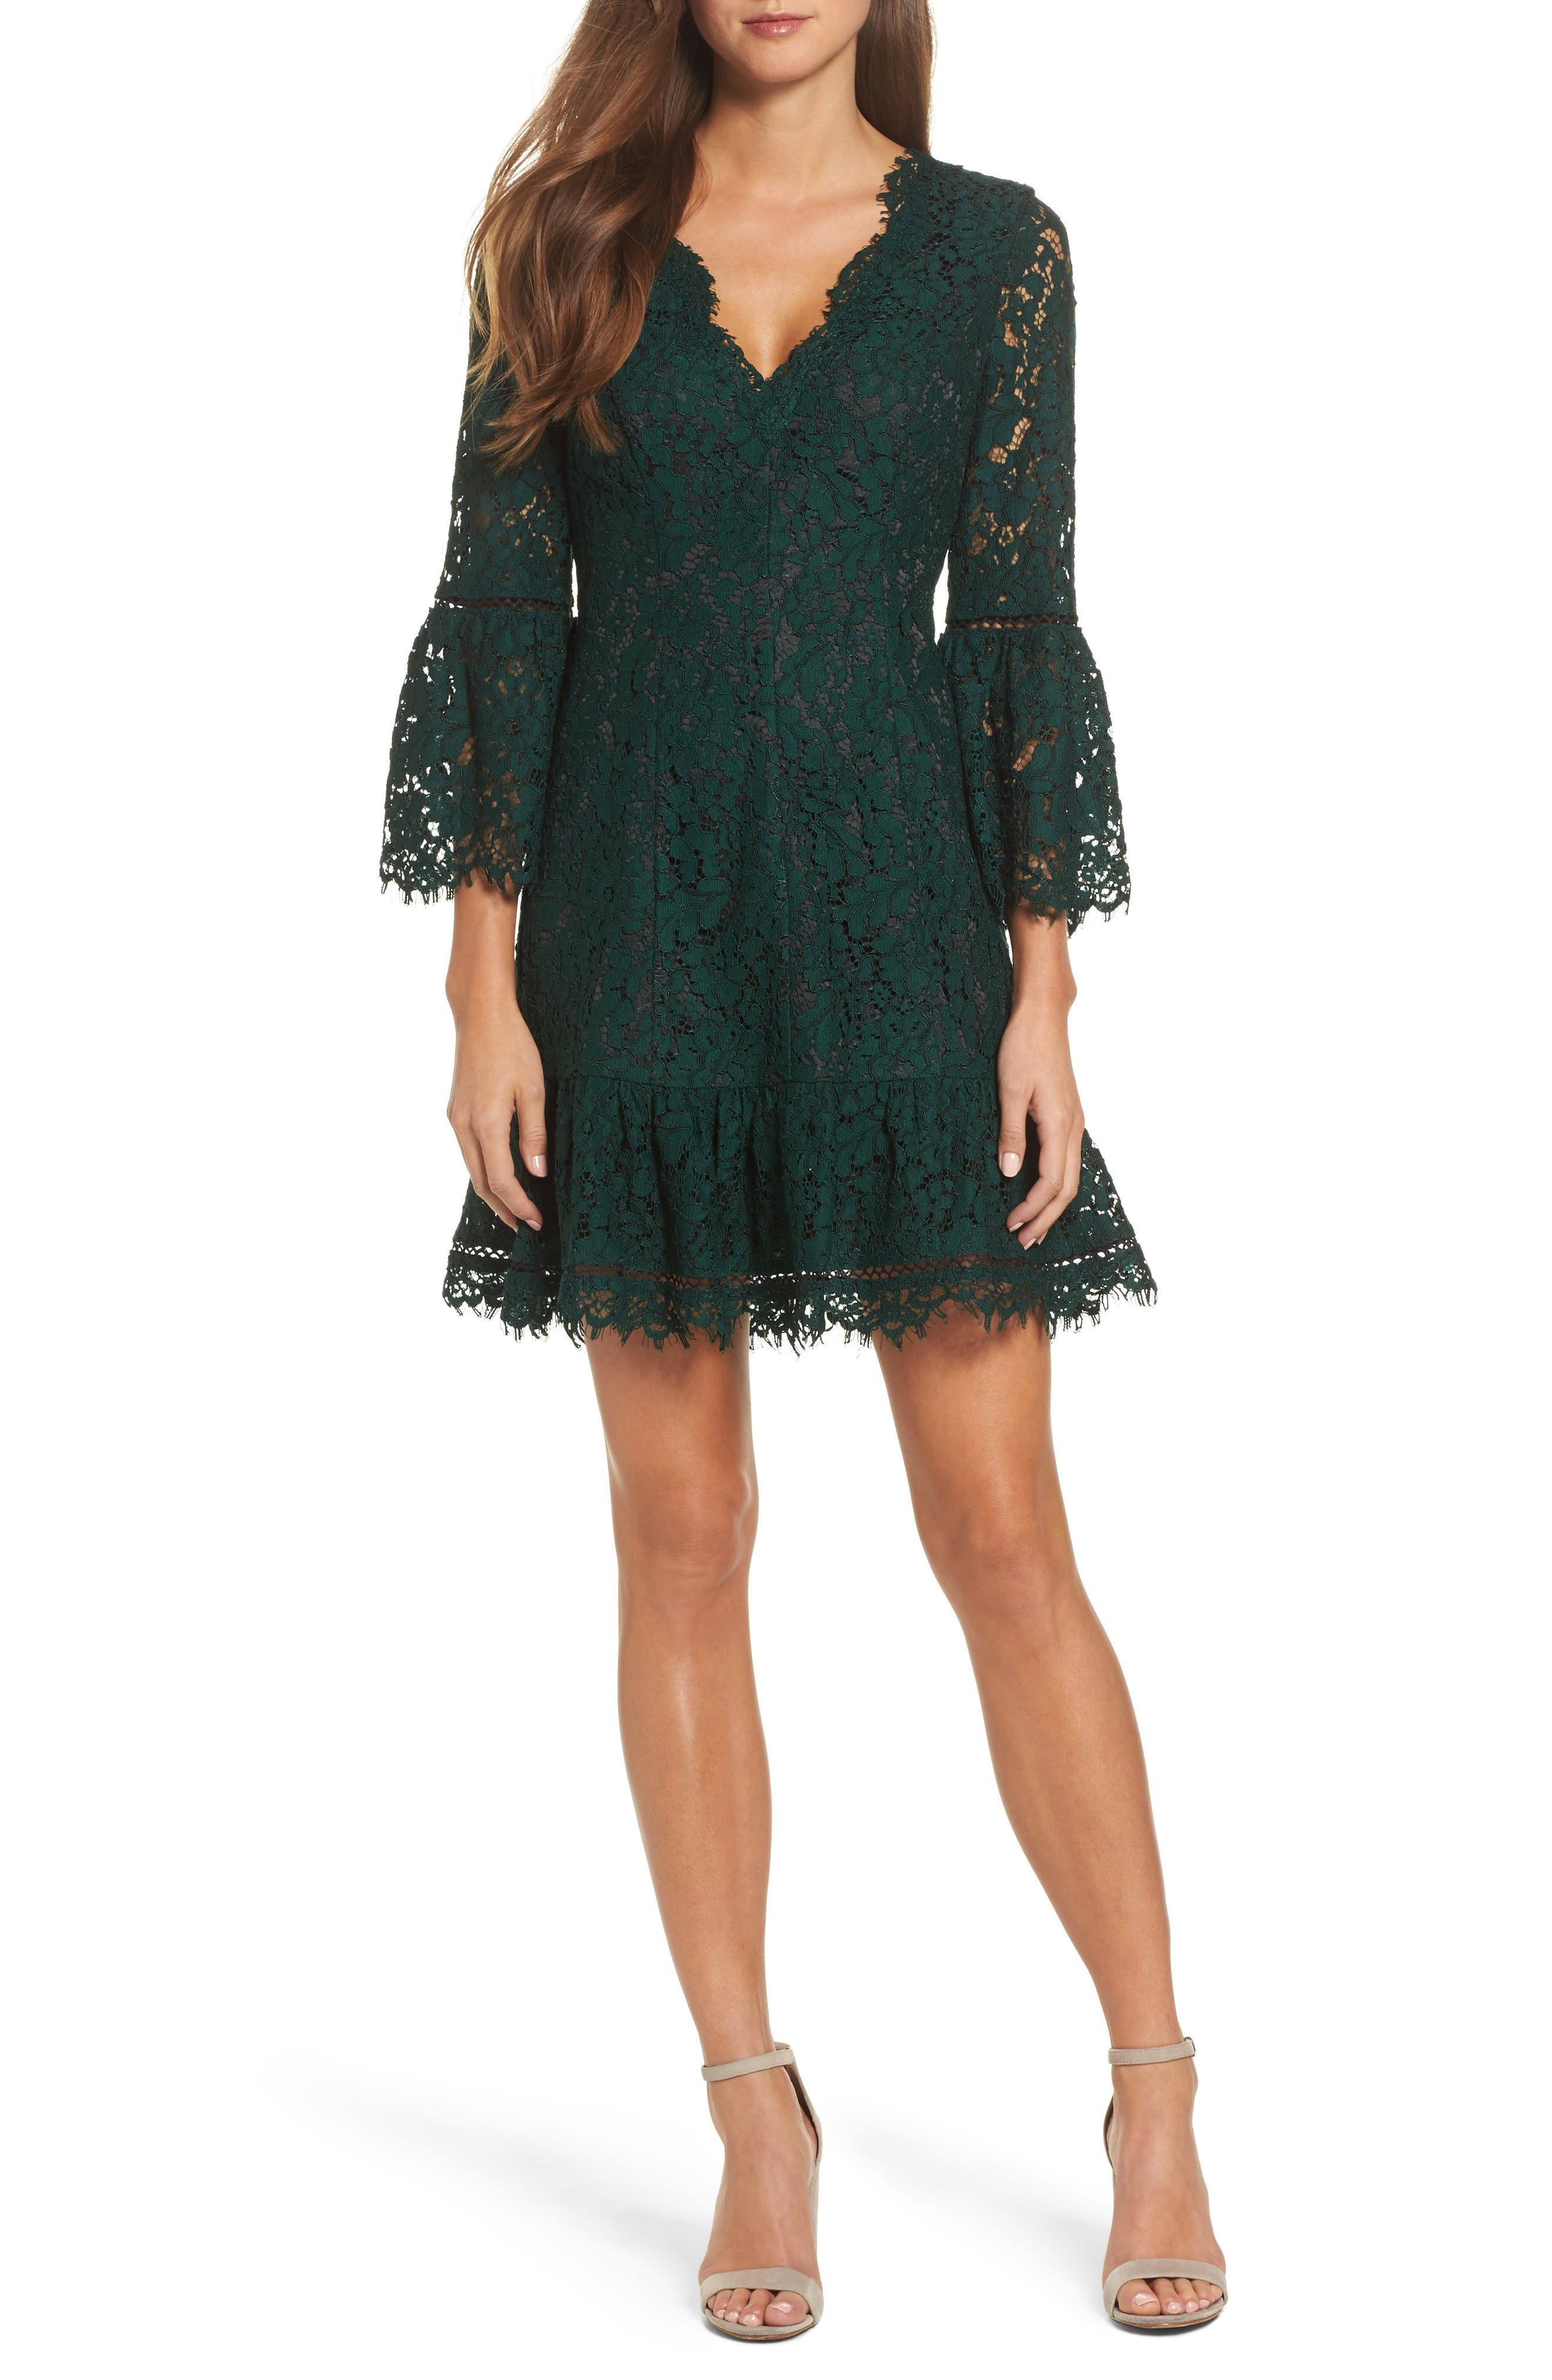 Textured with Lace Short Formal Dresses